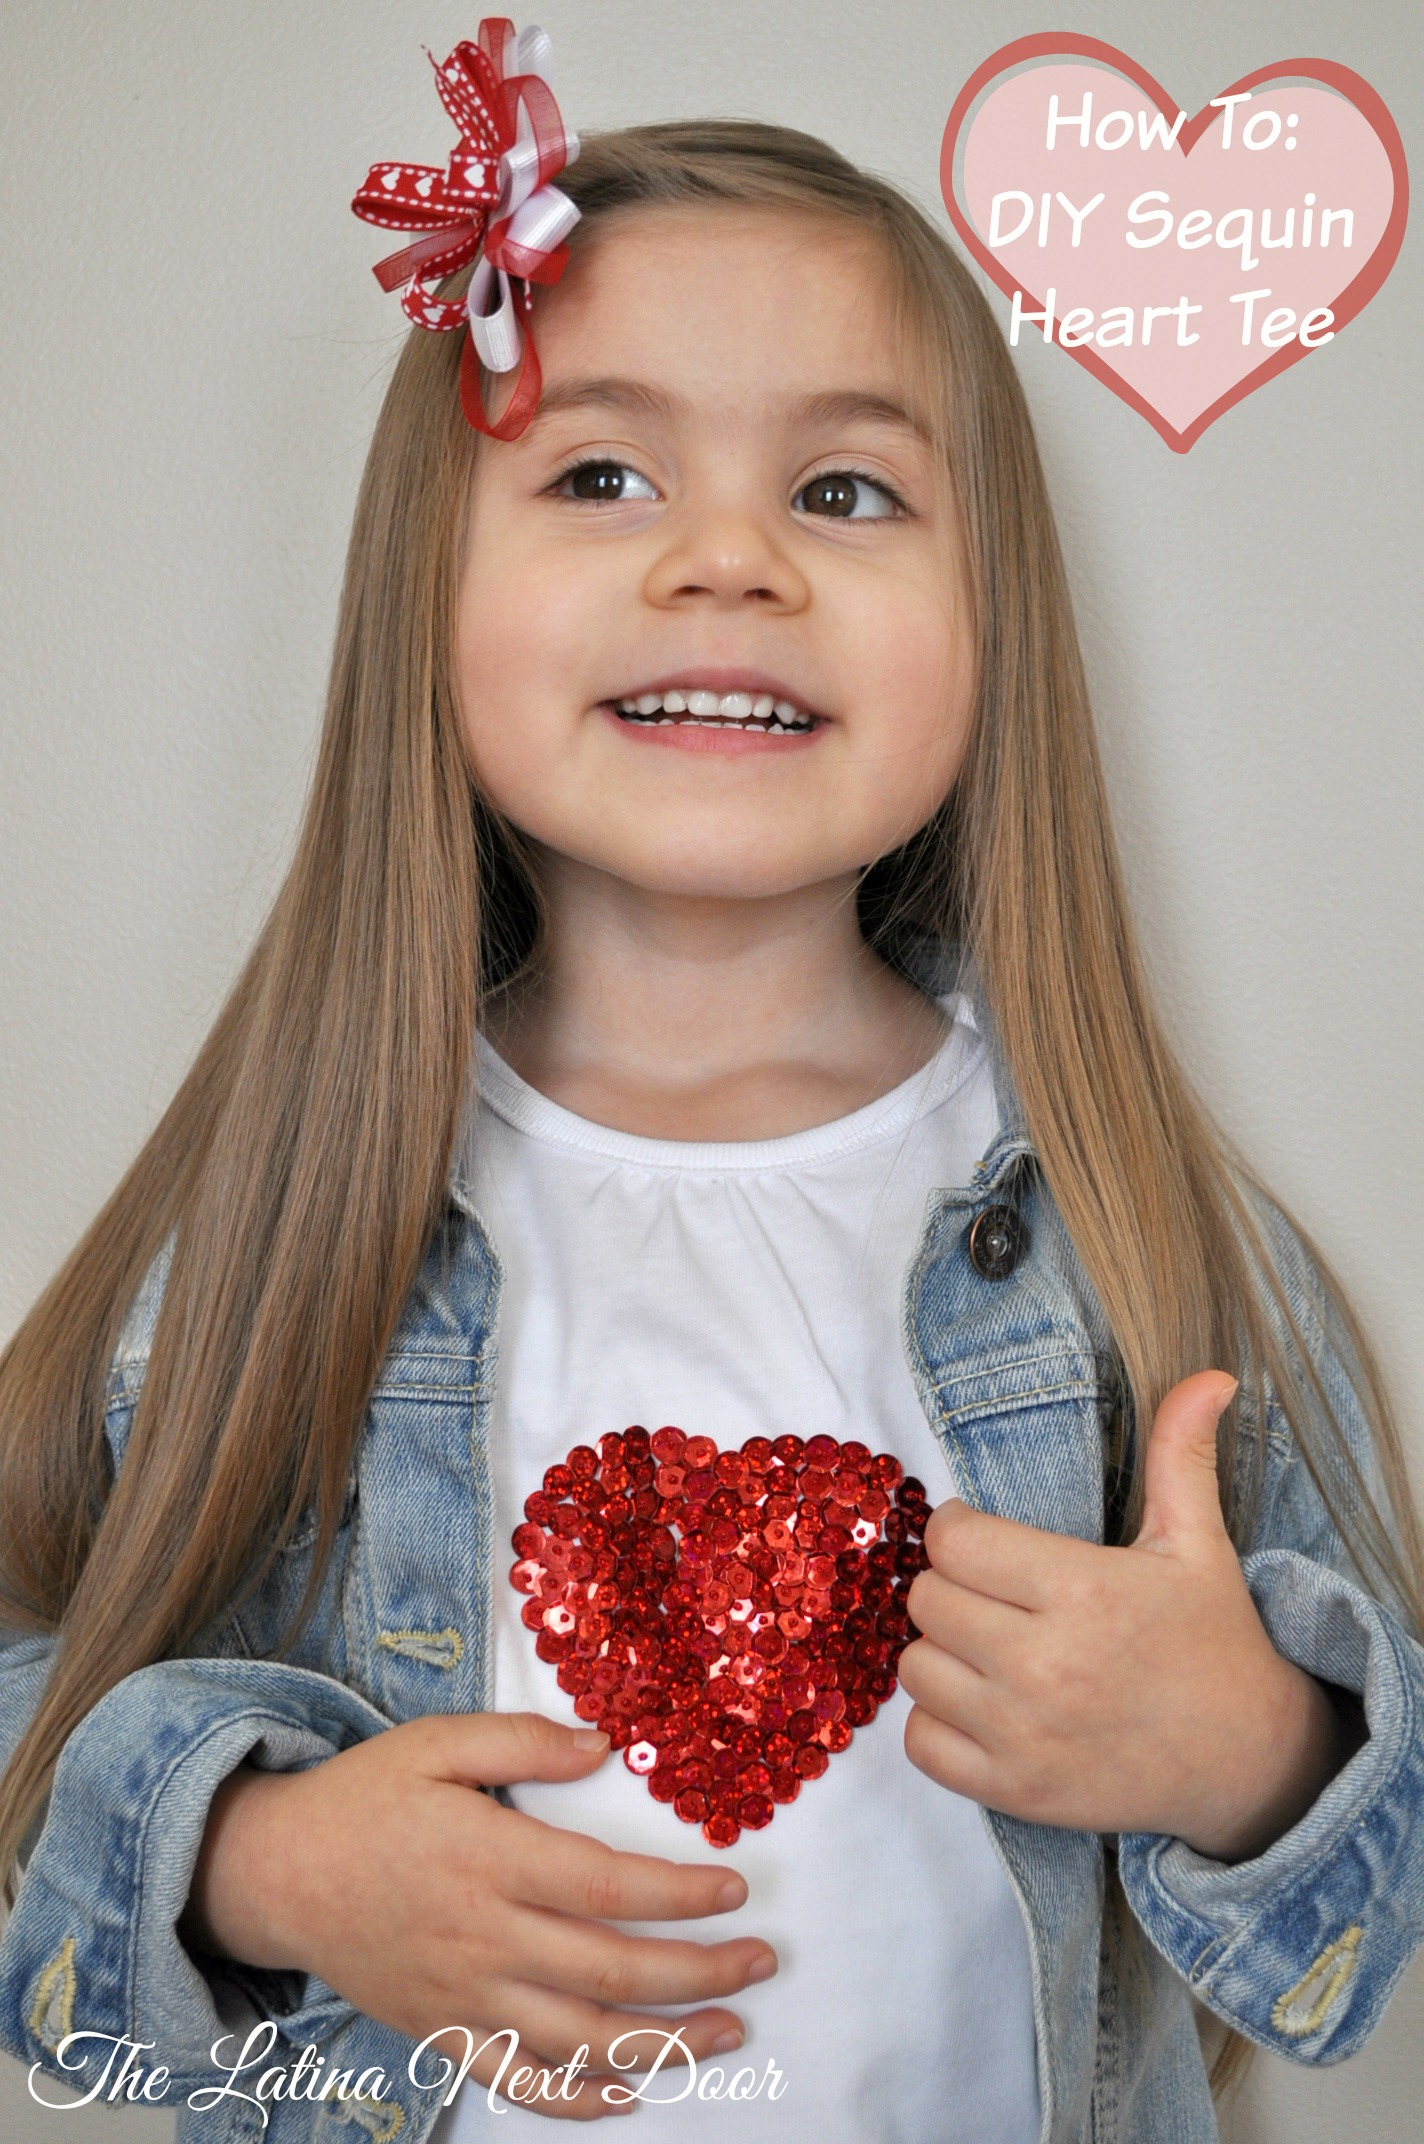 DIY Sequin Heart Tee Valentines DIY Sequin Heart T shirt Tutorial for Valentines Day